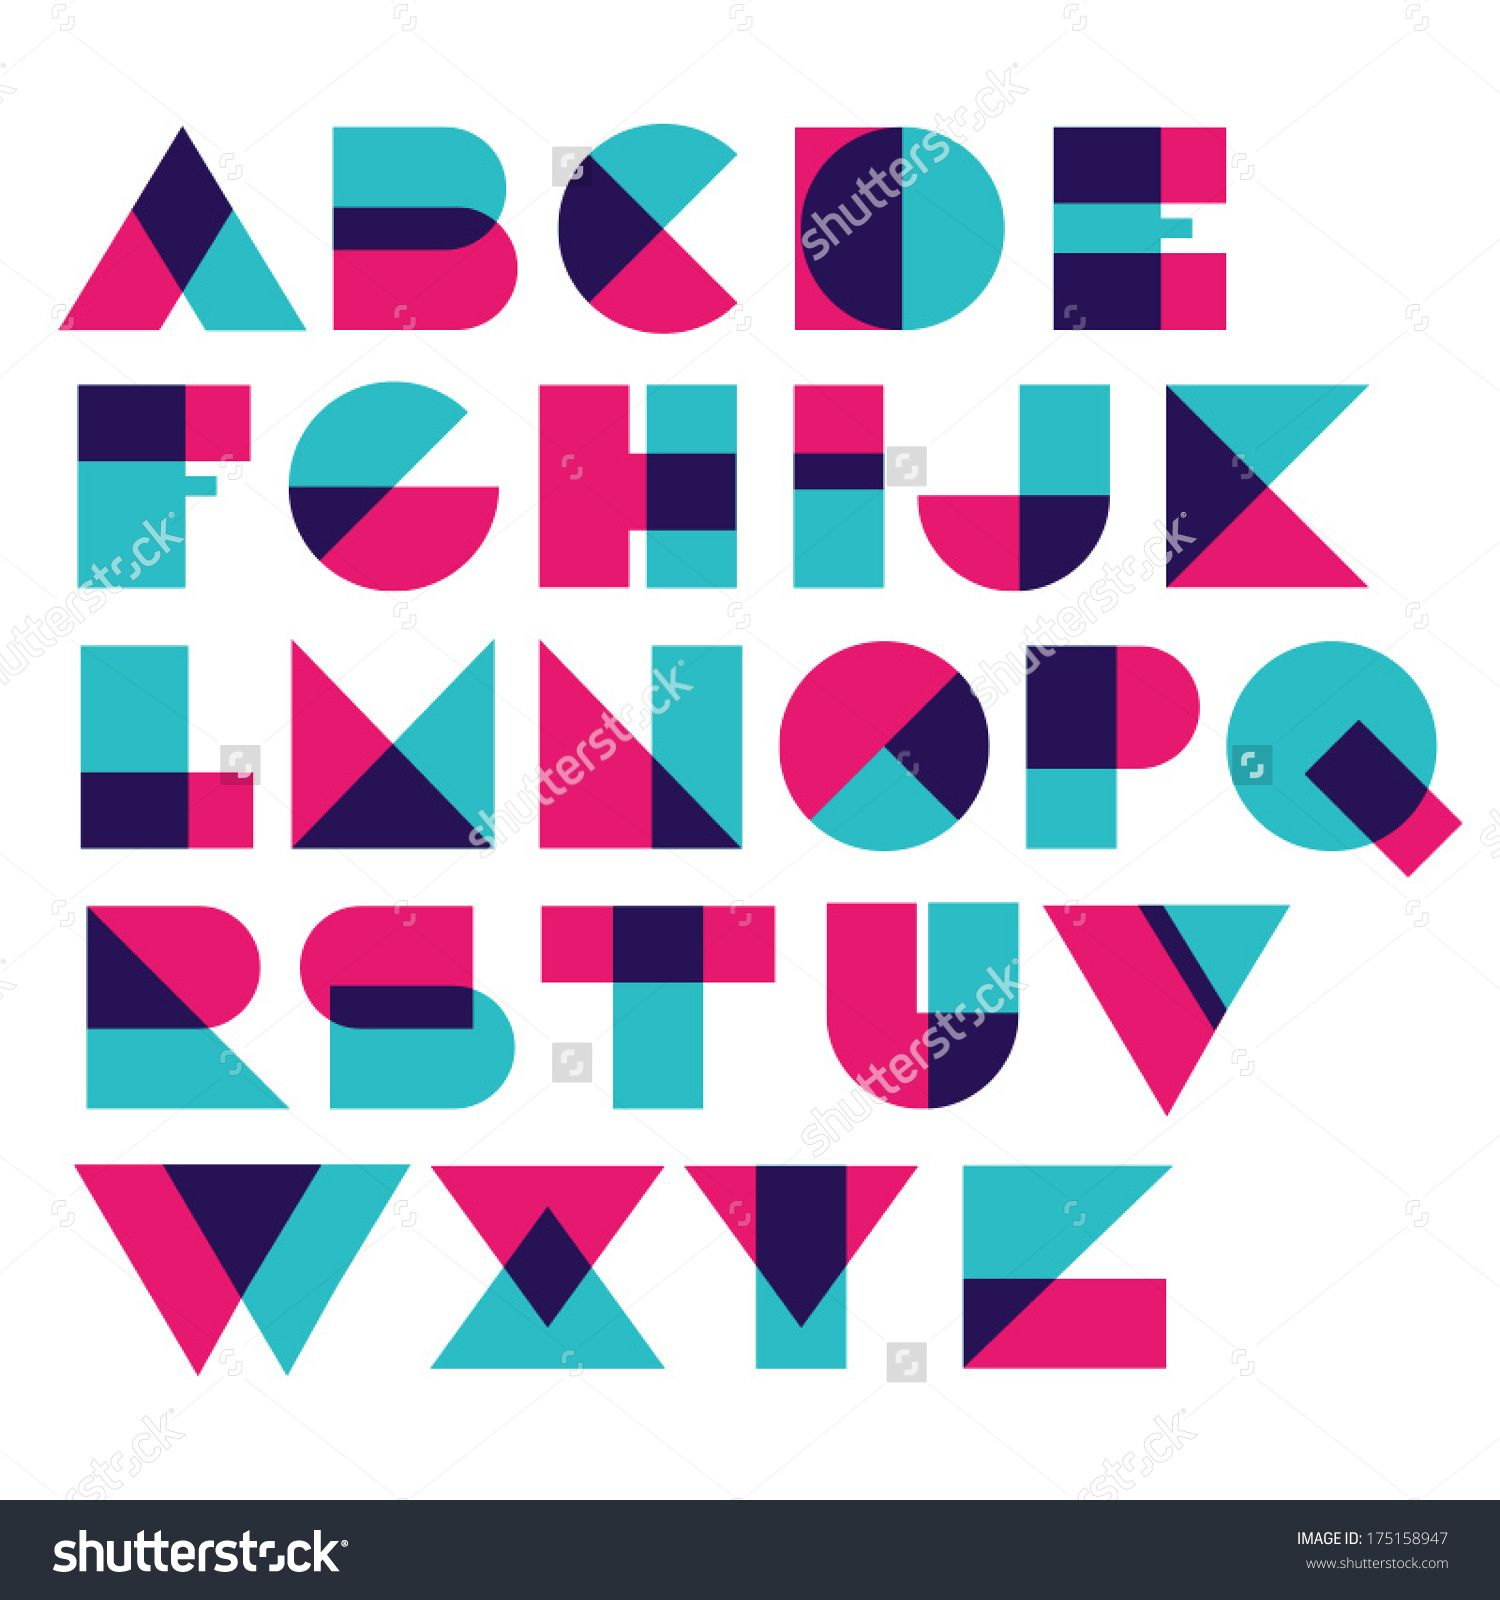 image result for geometric font puzzle refs pinterest geometric font fonts and typo